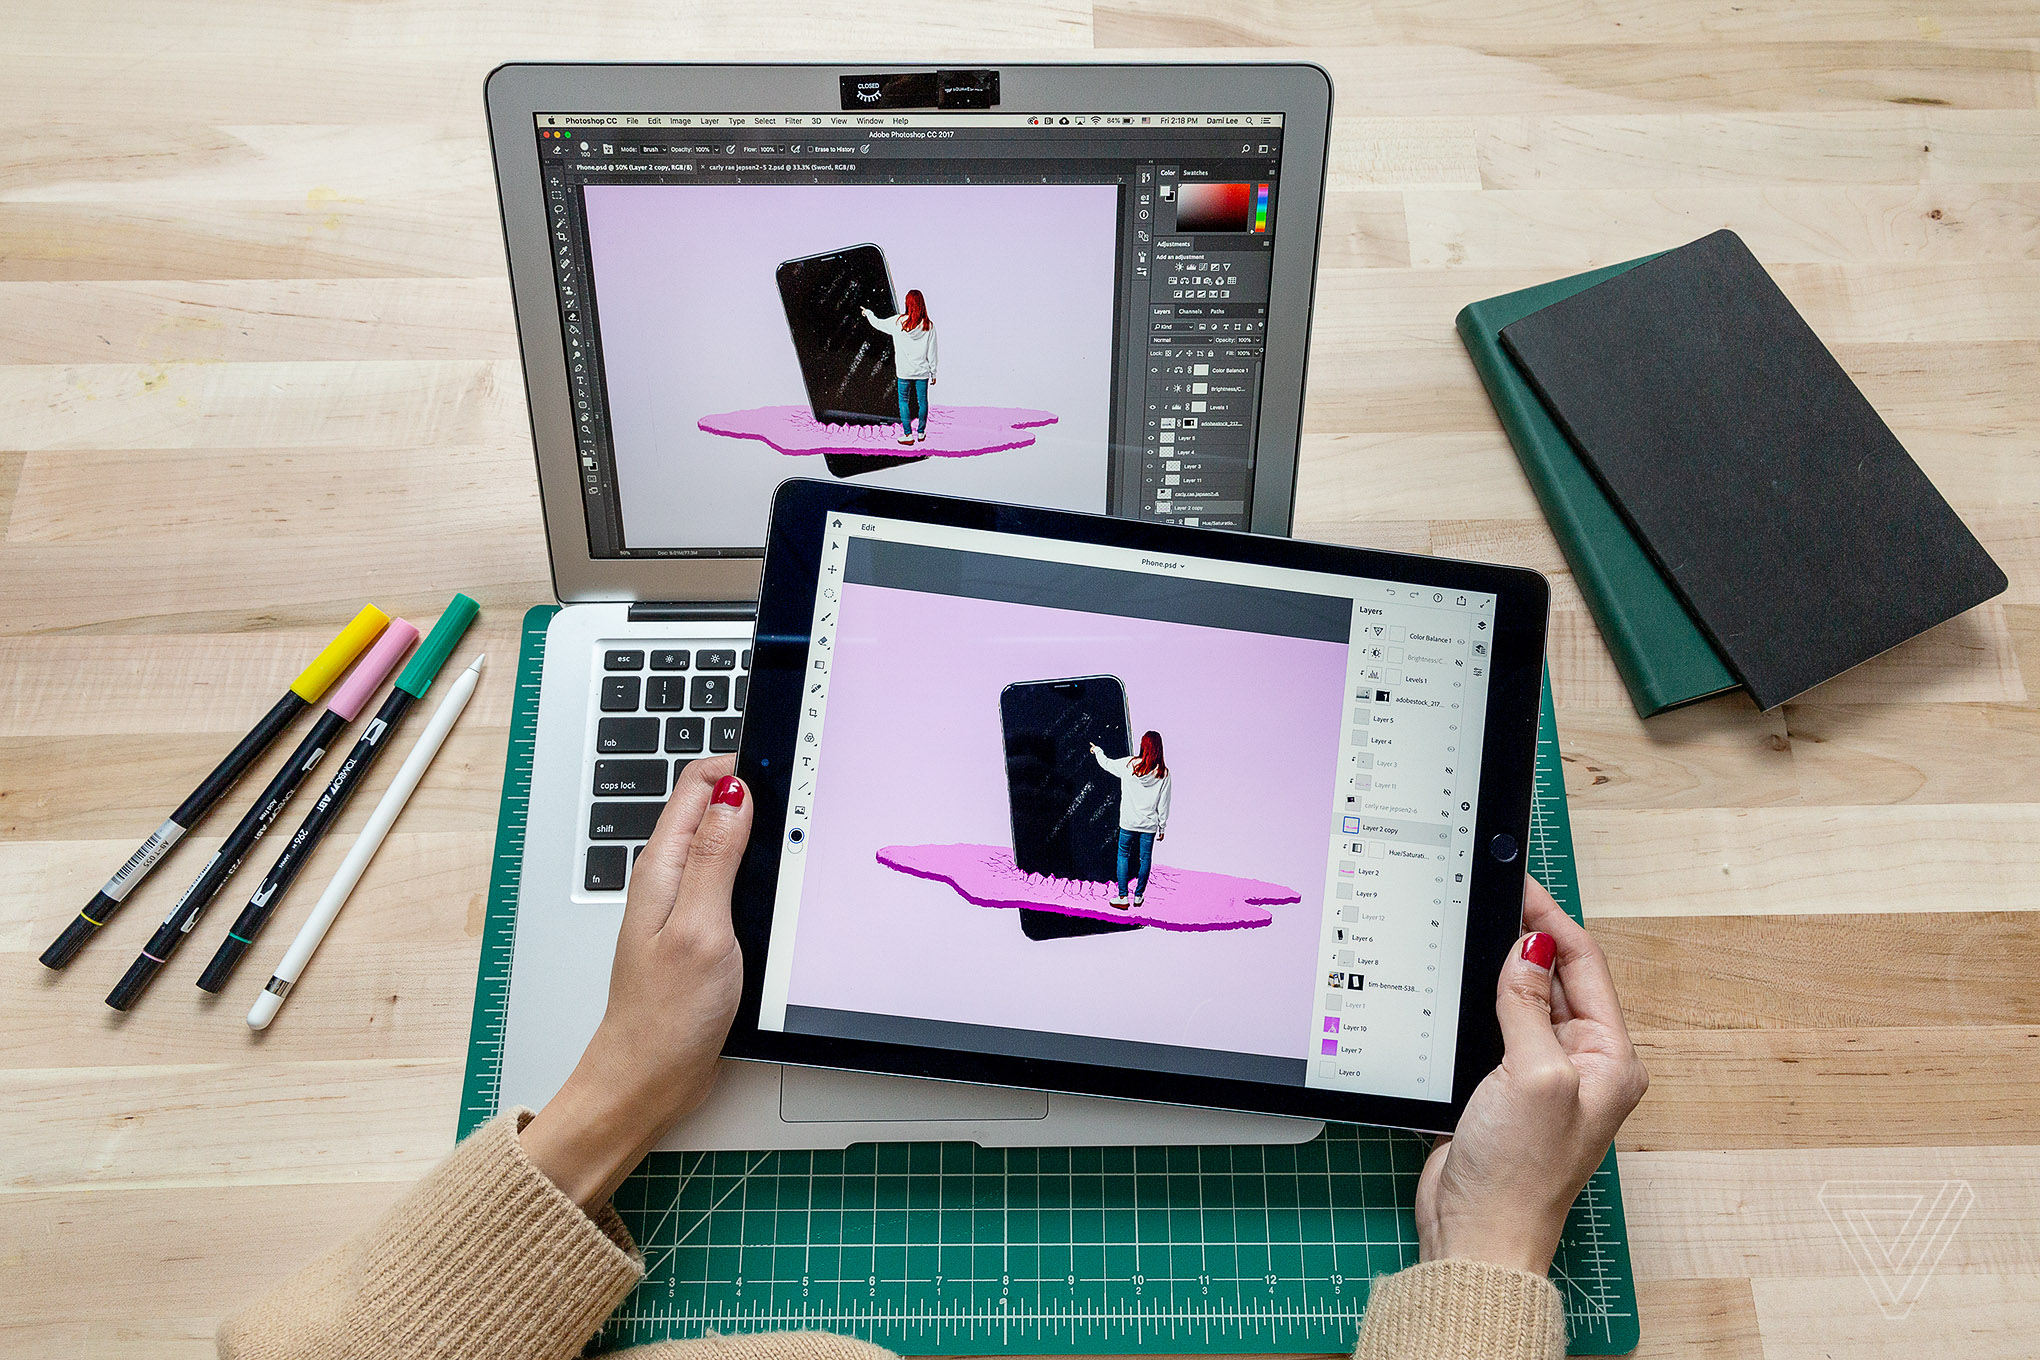 Adobe Photoshop on a tablet